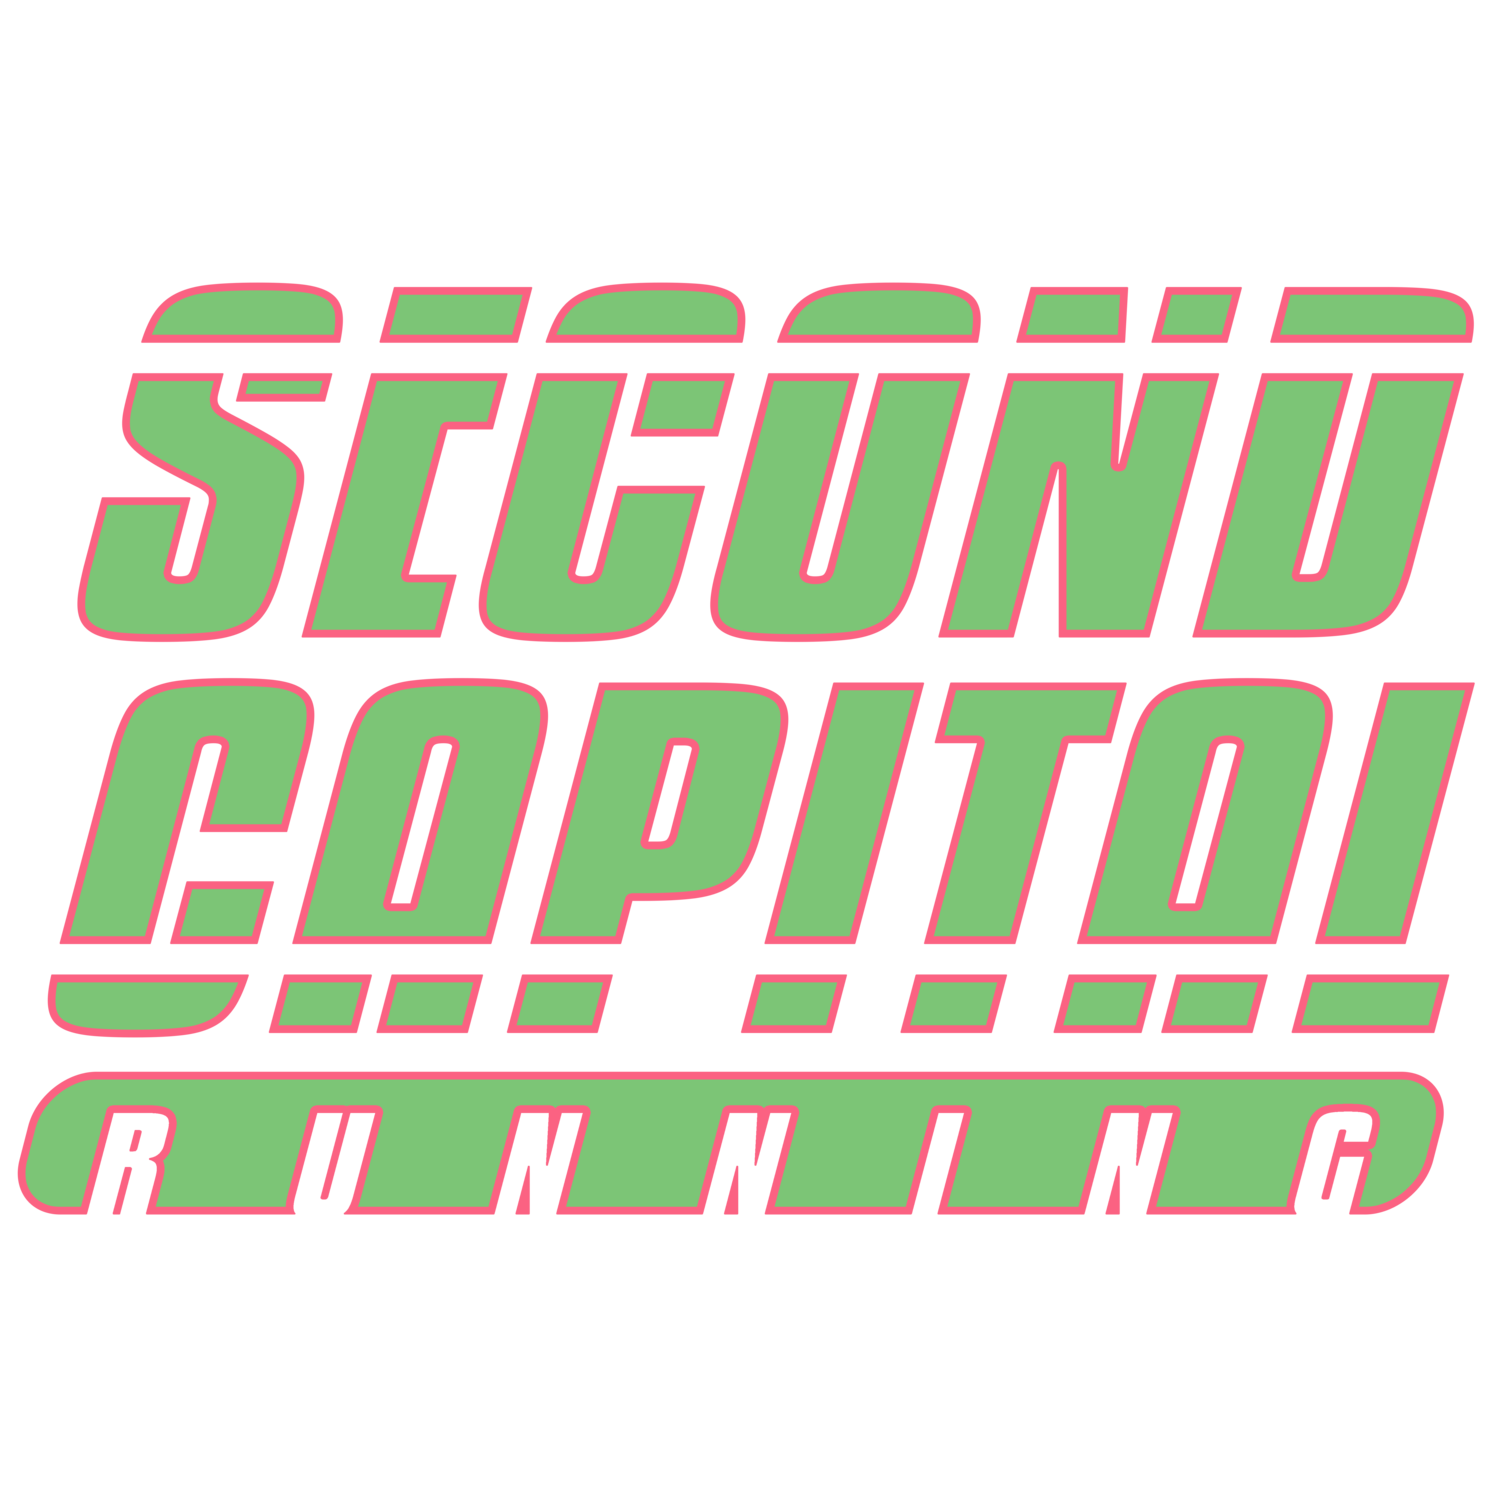 Second Capital Running